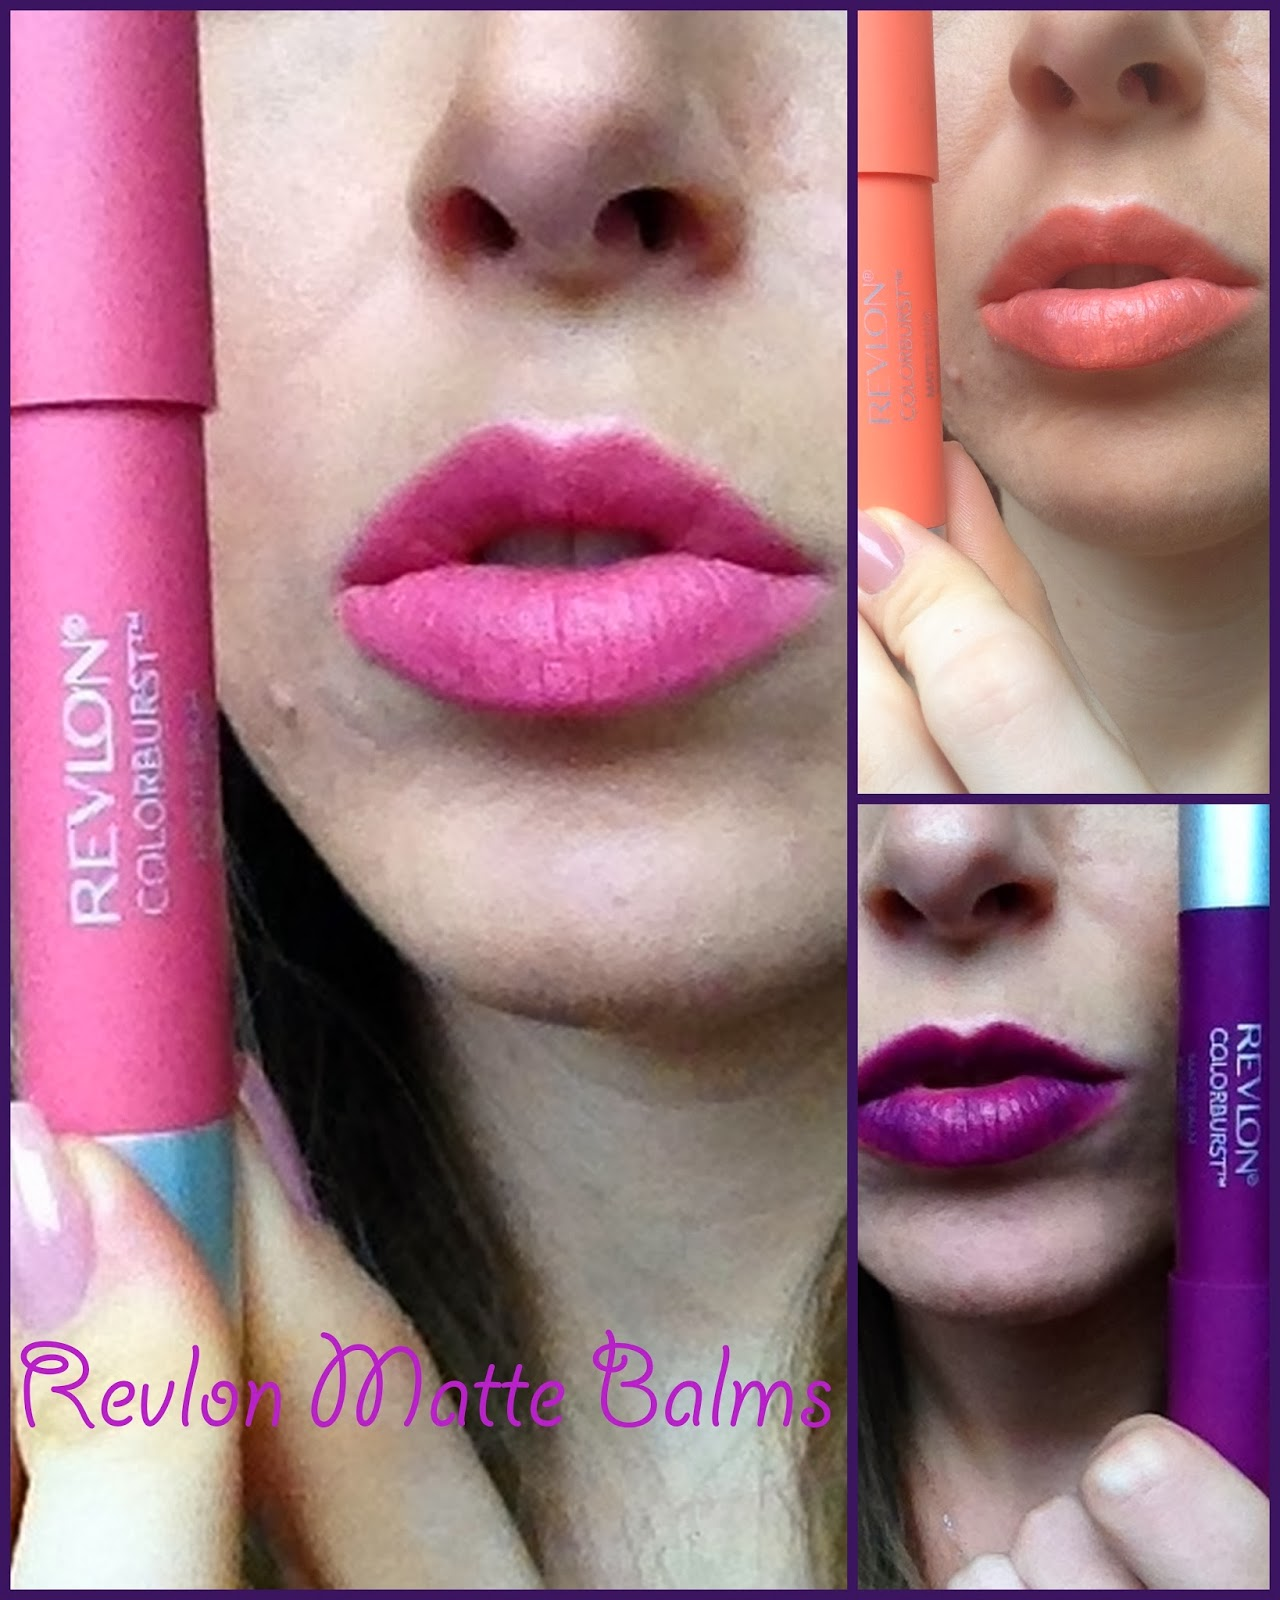 Revlon-matte-balm-review